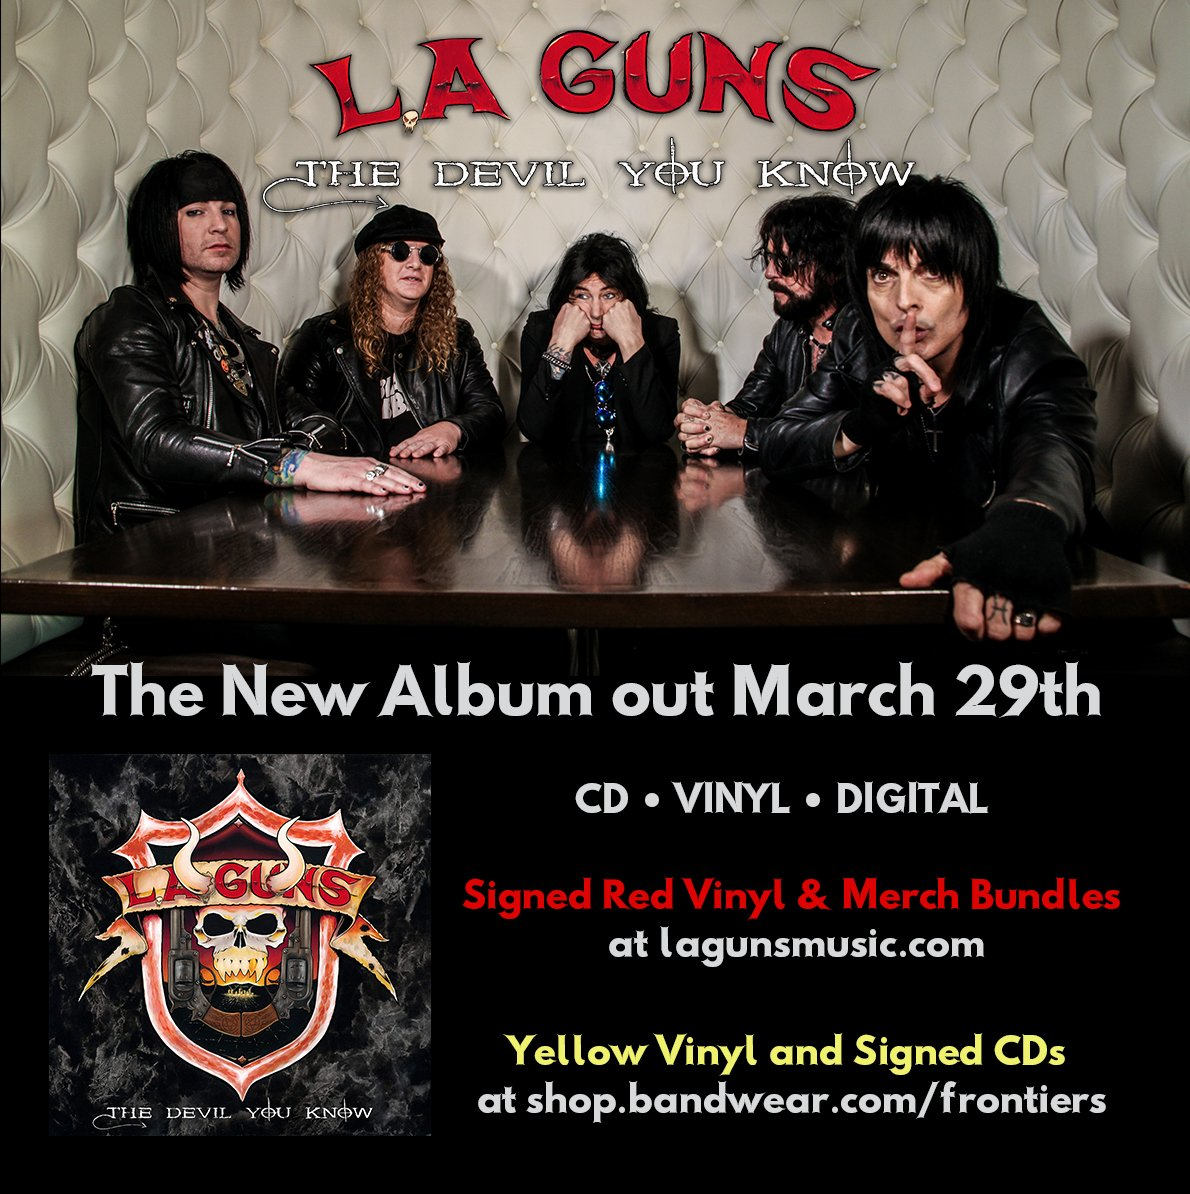 'The Devil You Know', the new album from @laguns is out on March 29th. Pre-order CD/LP/Digital HERE: http://radi.al/TheDevilYouKnow | Signed CDs HERE: https://shop.bandwear.com/Frontiers | Signed LPs HERE: http://www.lagunsmusic.com